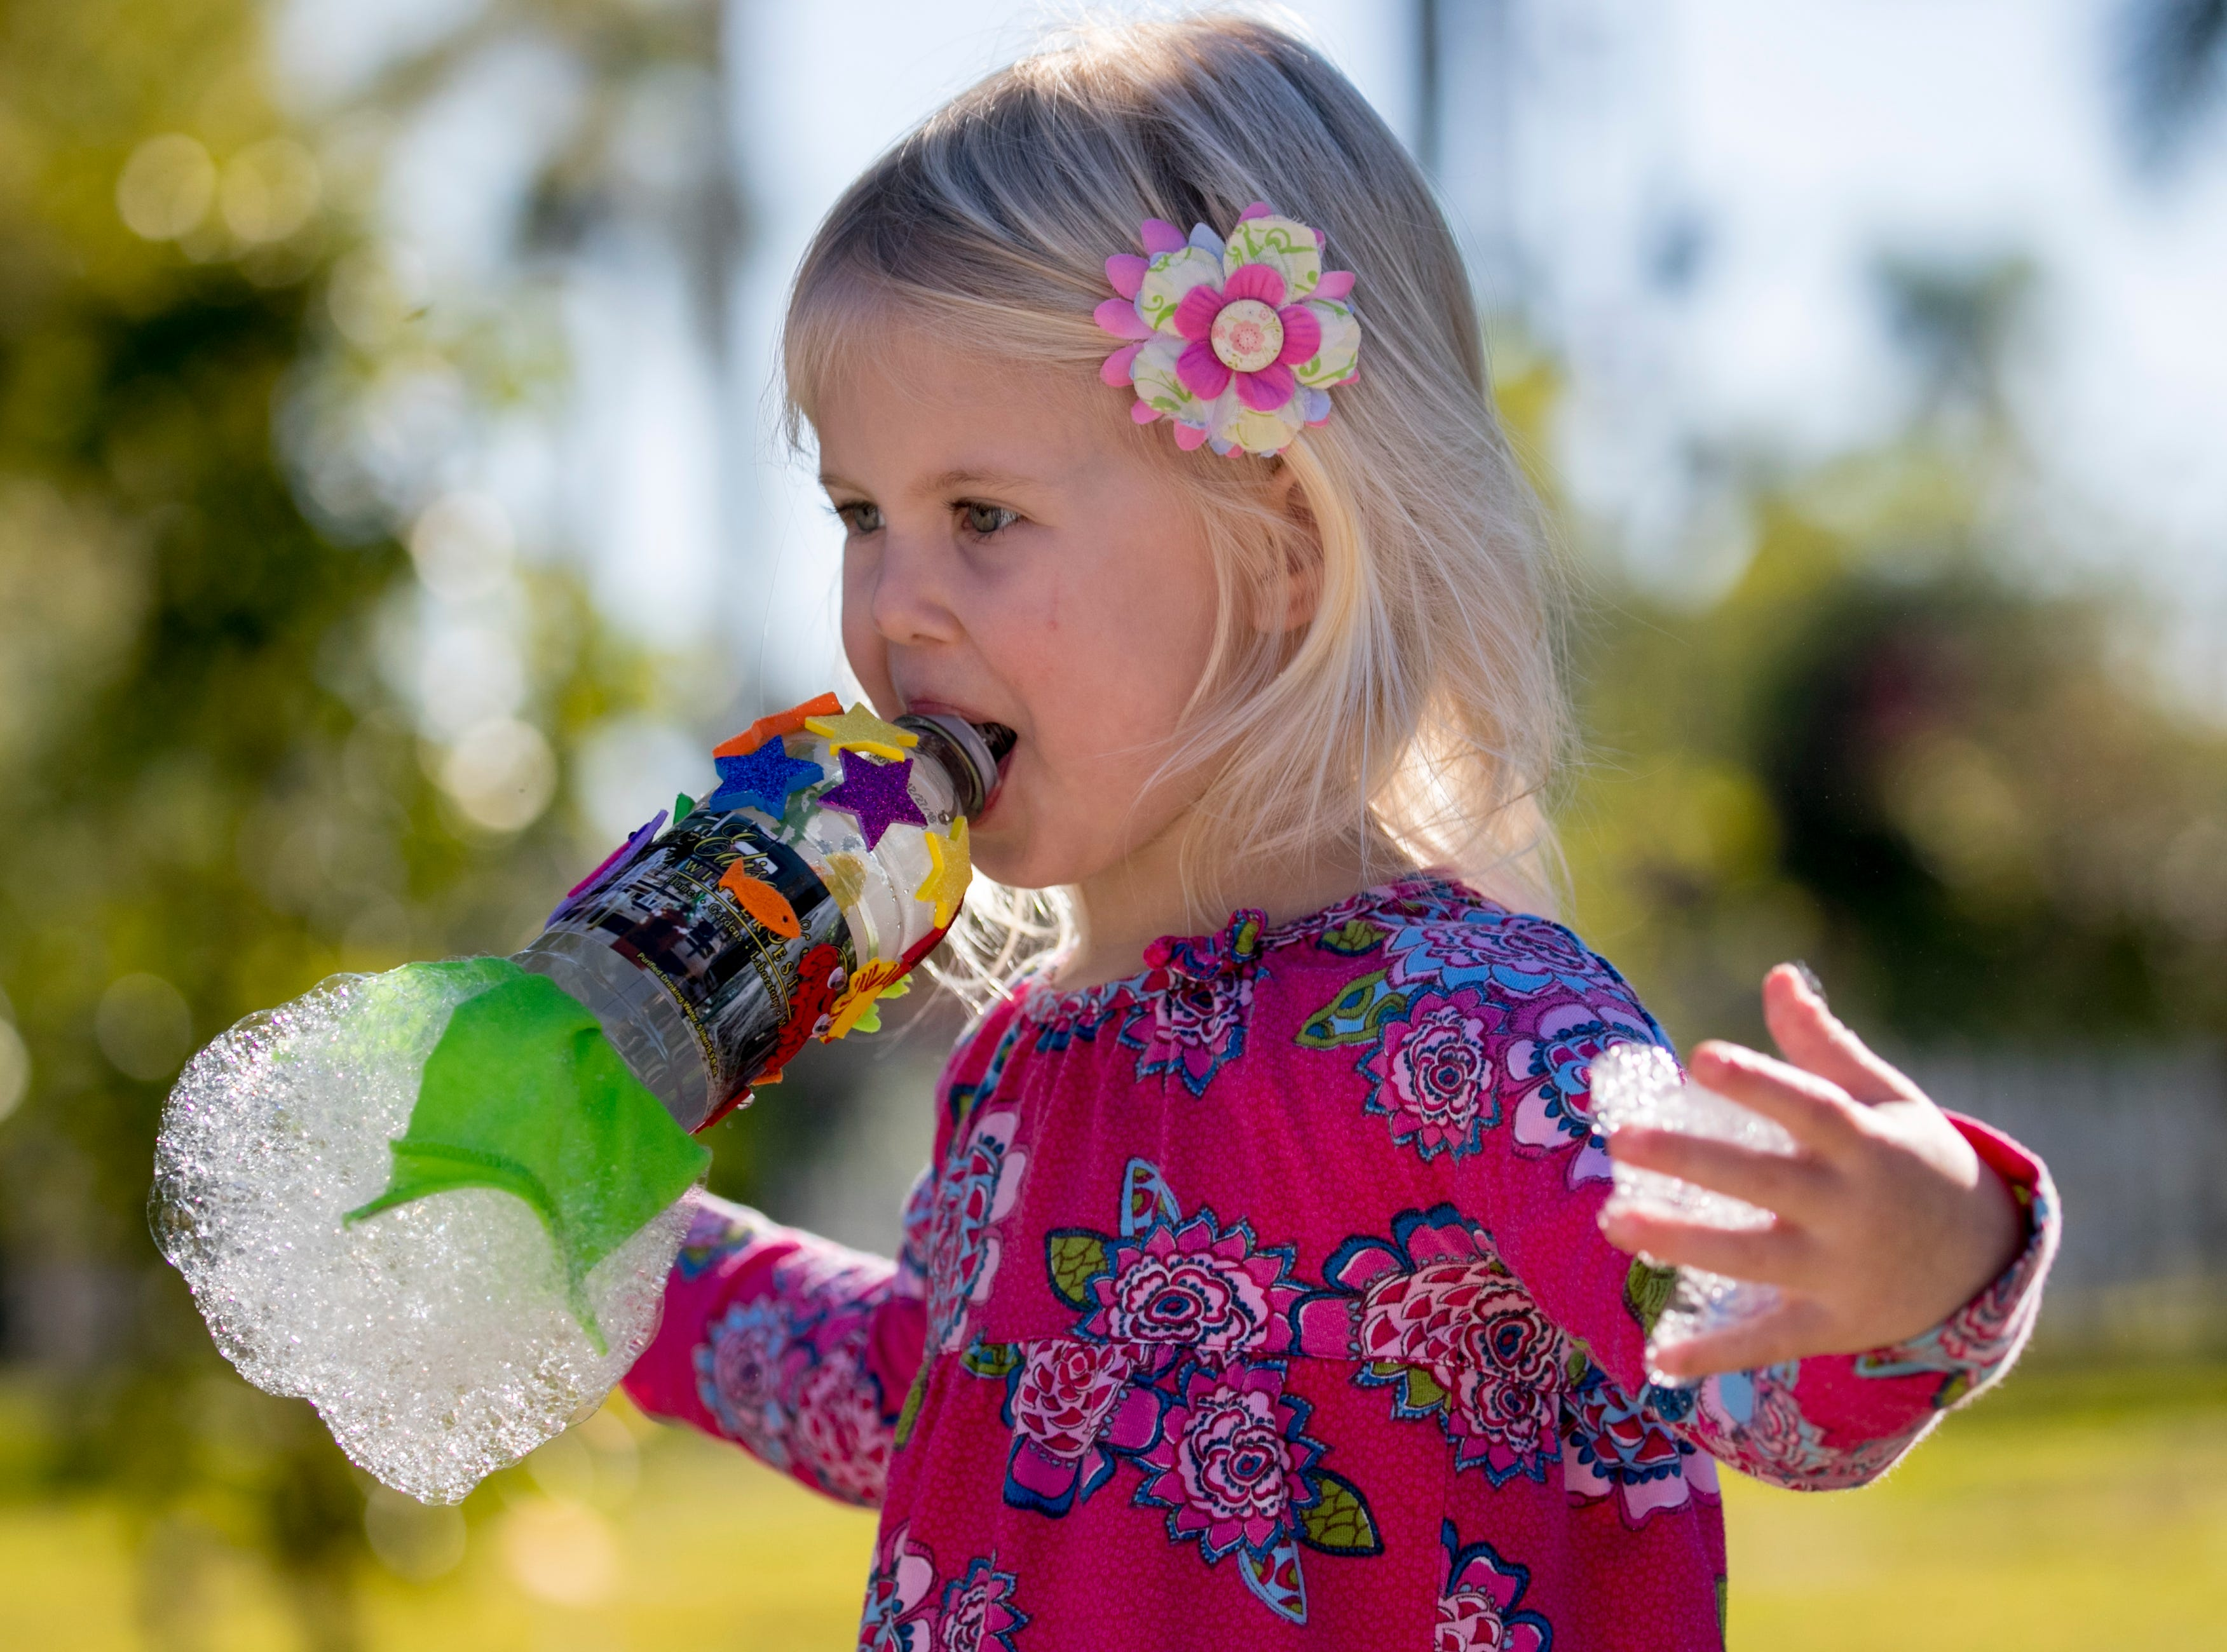 Stella Curry, 3, blows snake bubbles during the monthly Emerging Inventors program on Thursday, January 17, 2019, at the Edison & Ford Winter Estates in Fort Myers. This month's program was called Bouncing Bubbles. The next program, which is for children 5 and younger, is February 21 at 9:30 am, and is called is LEGO Art and Engineering.